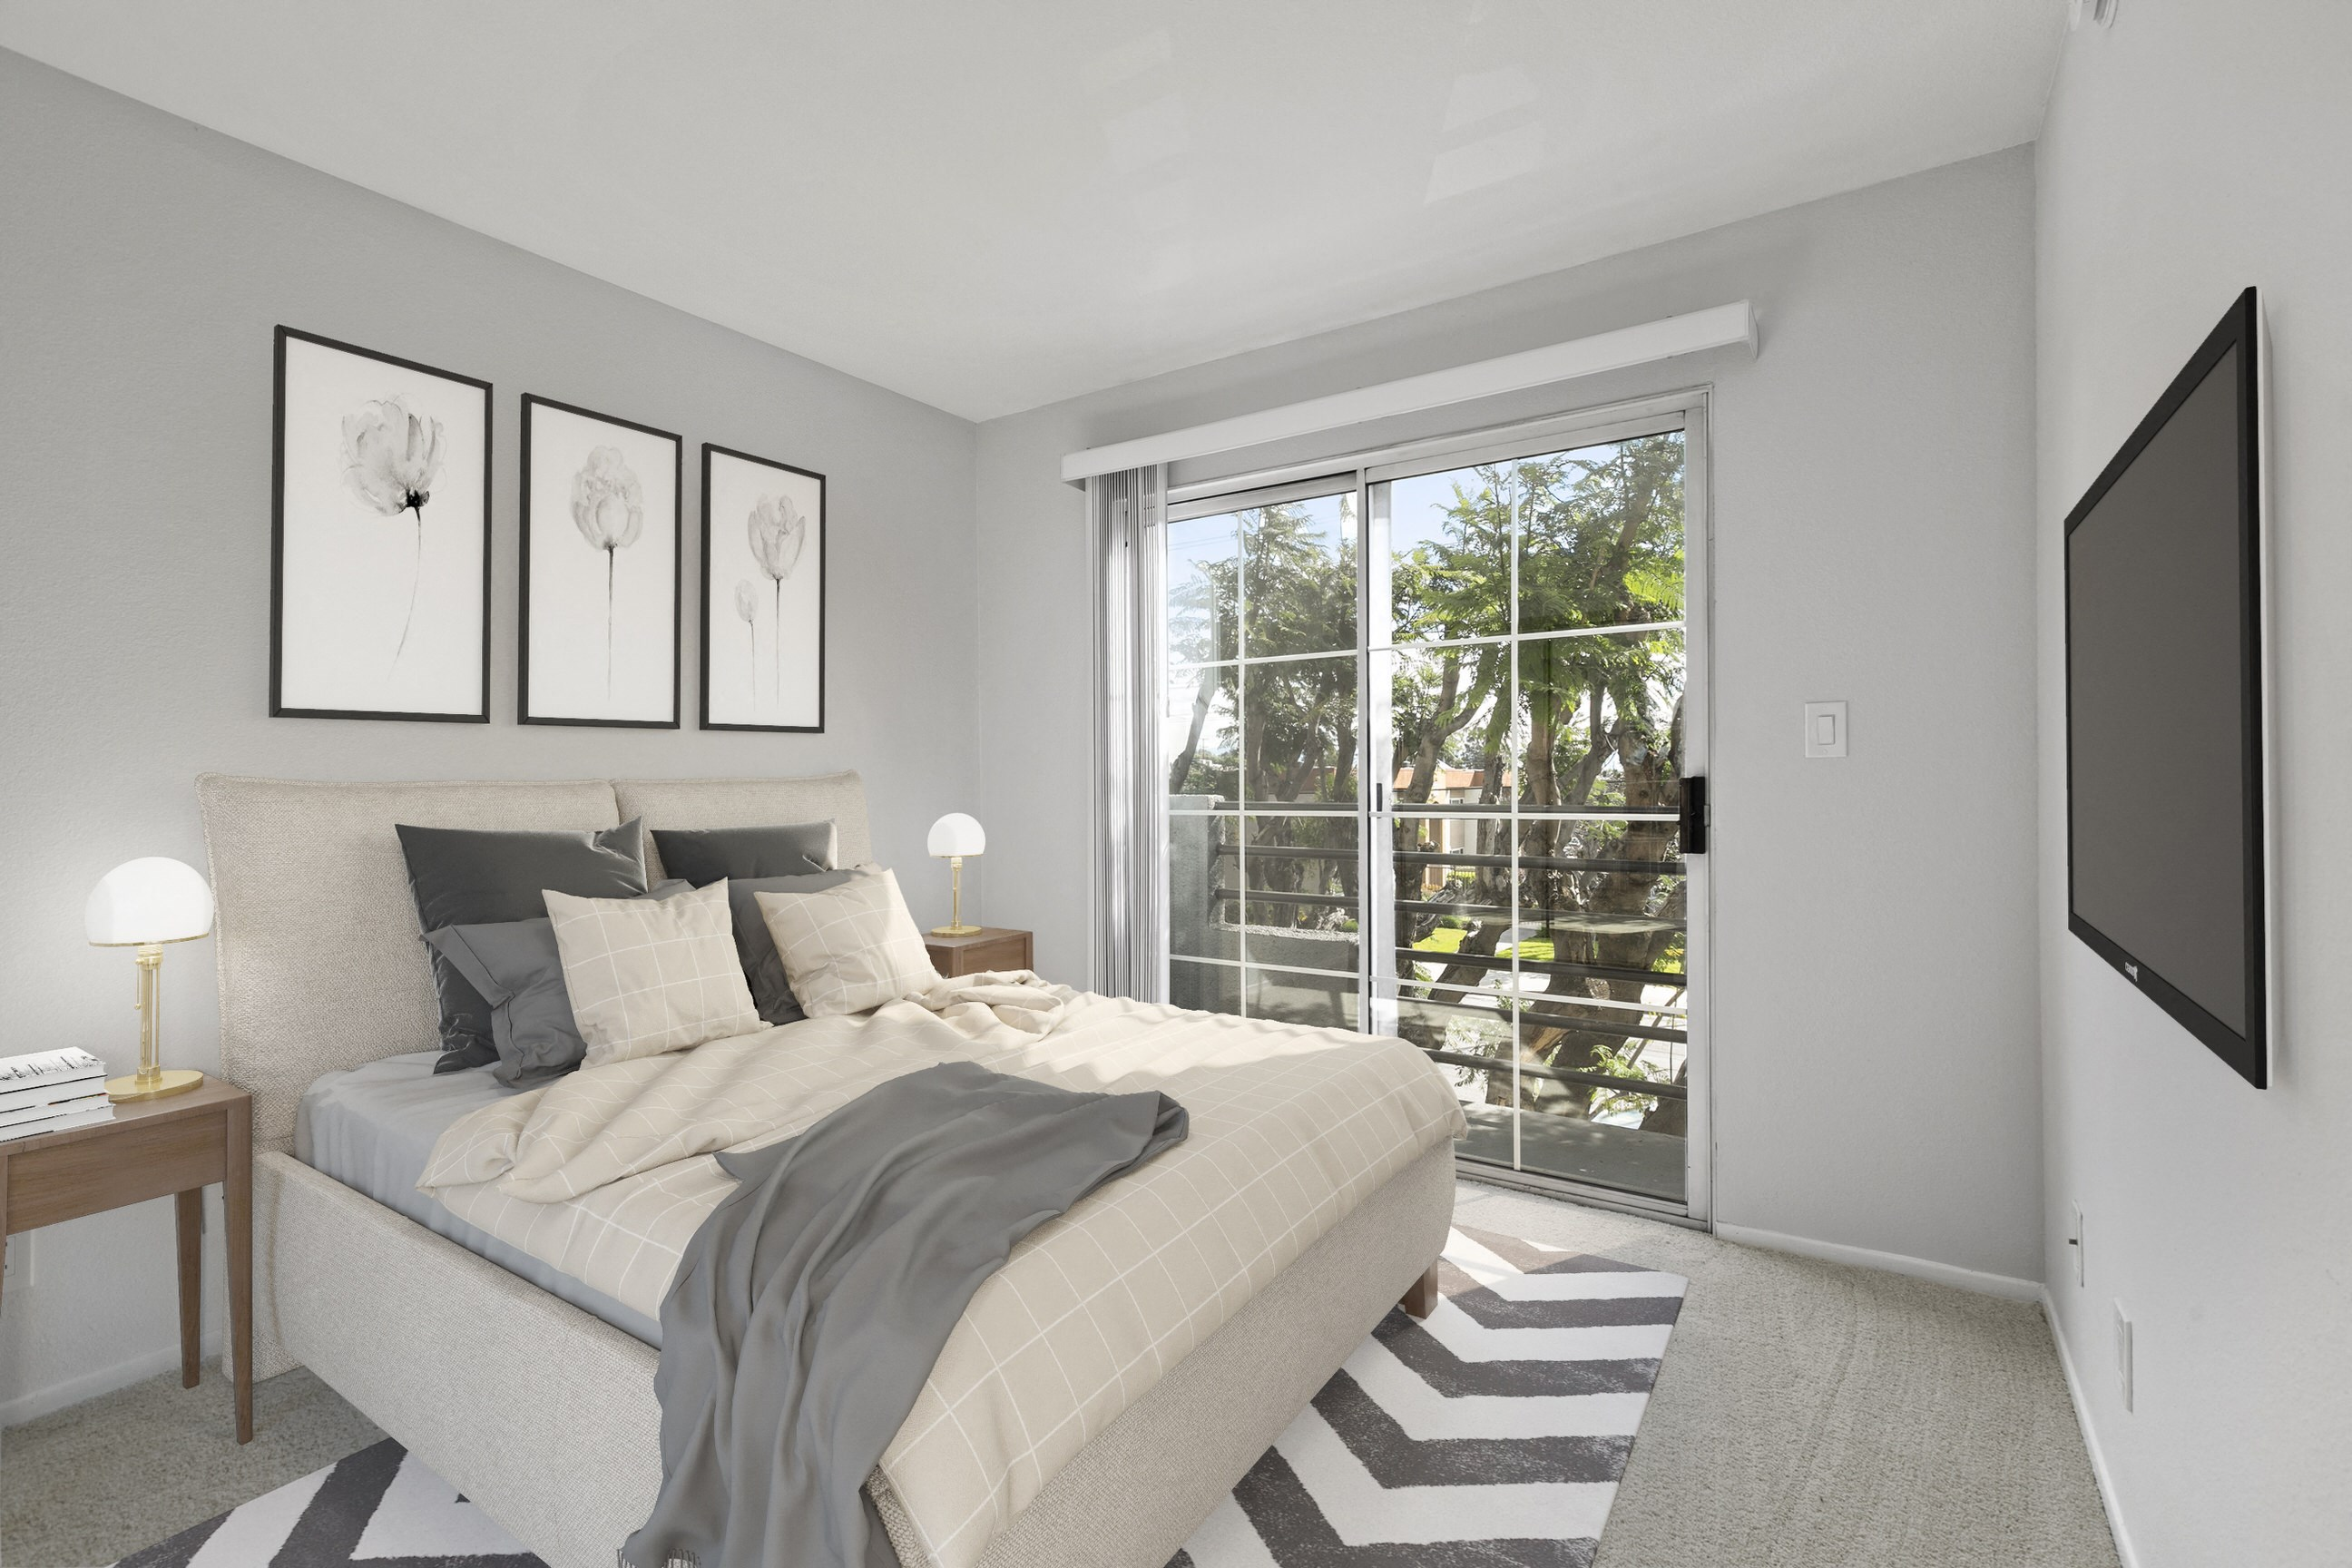 Bedroom at NoVa Townhomes 8761 De Soto Ave, Canoga Park, CA 91304